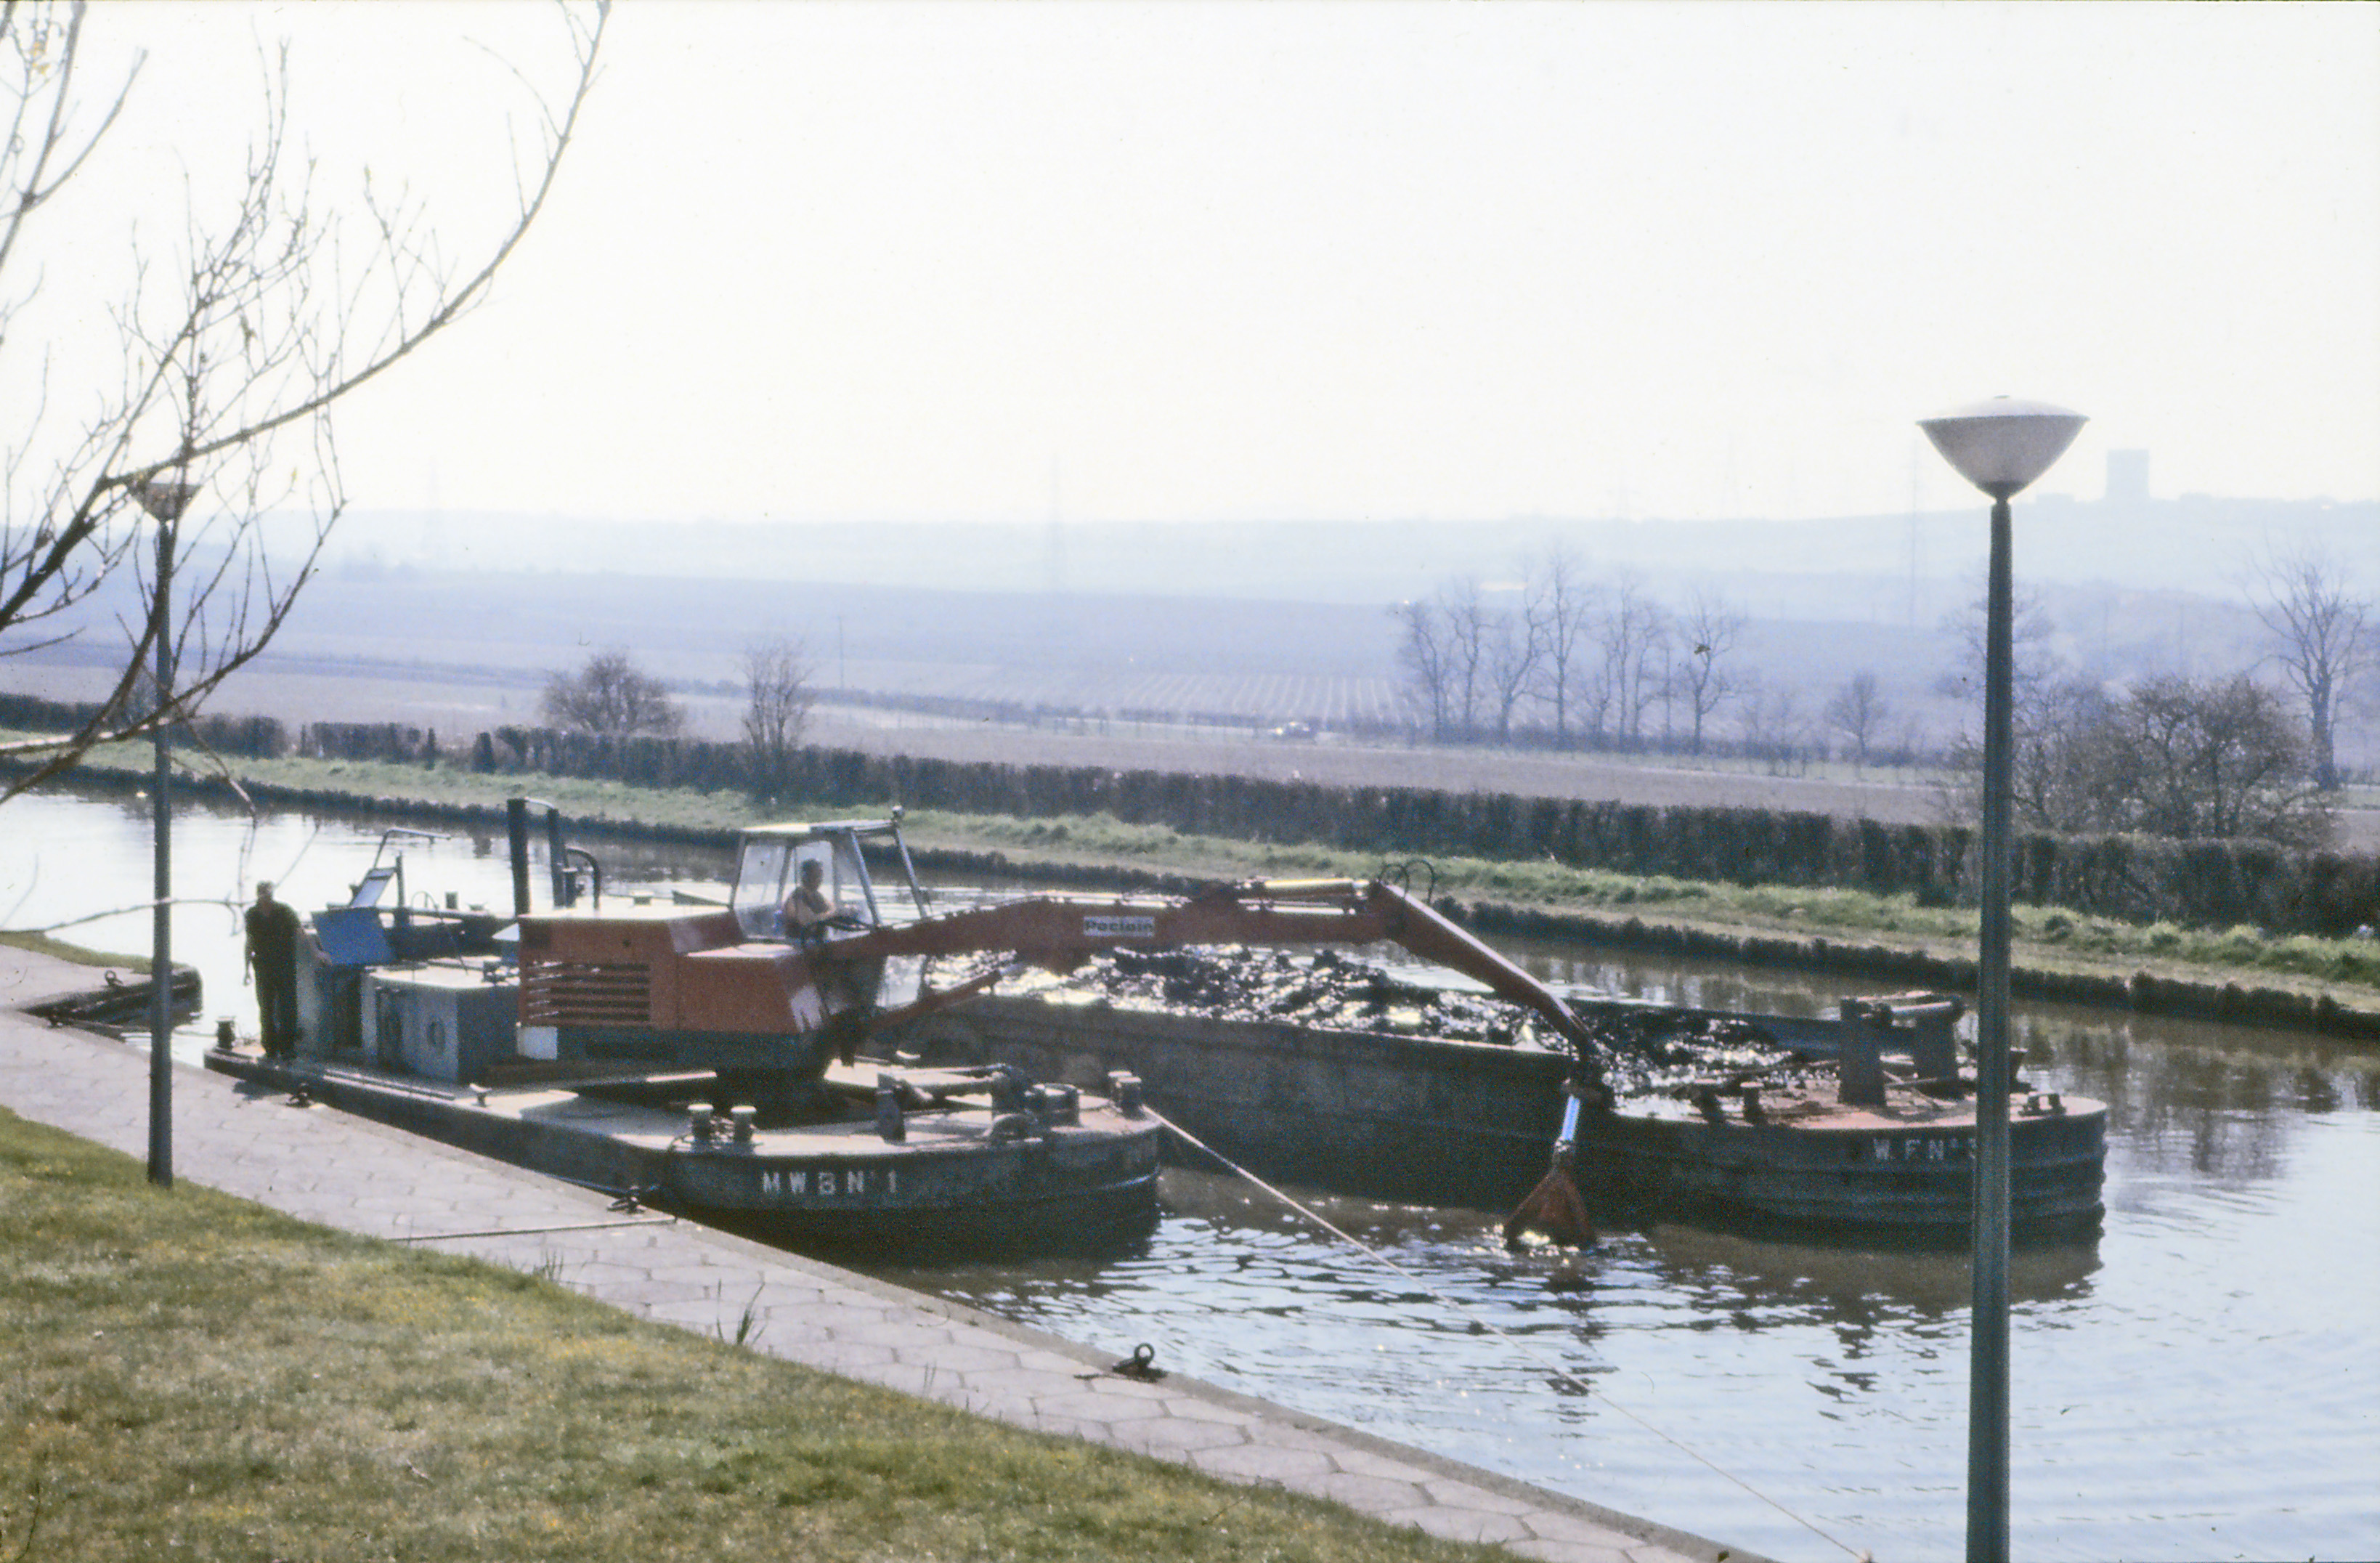 sc0011.jpg - Dredging the Bridgewater canal